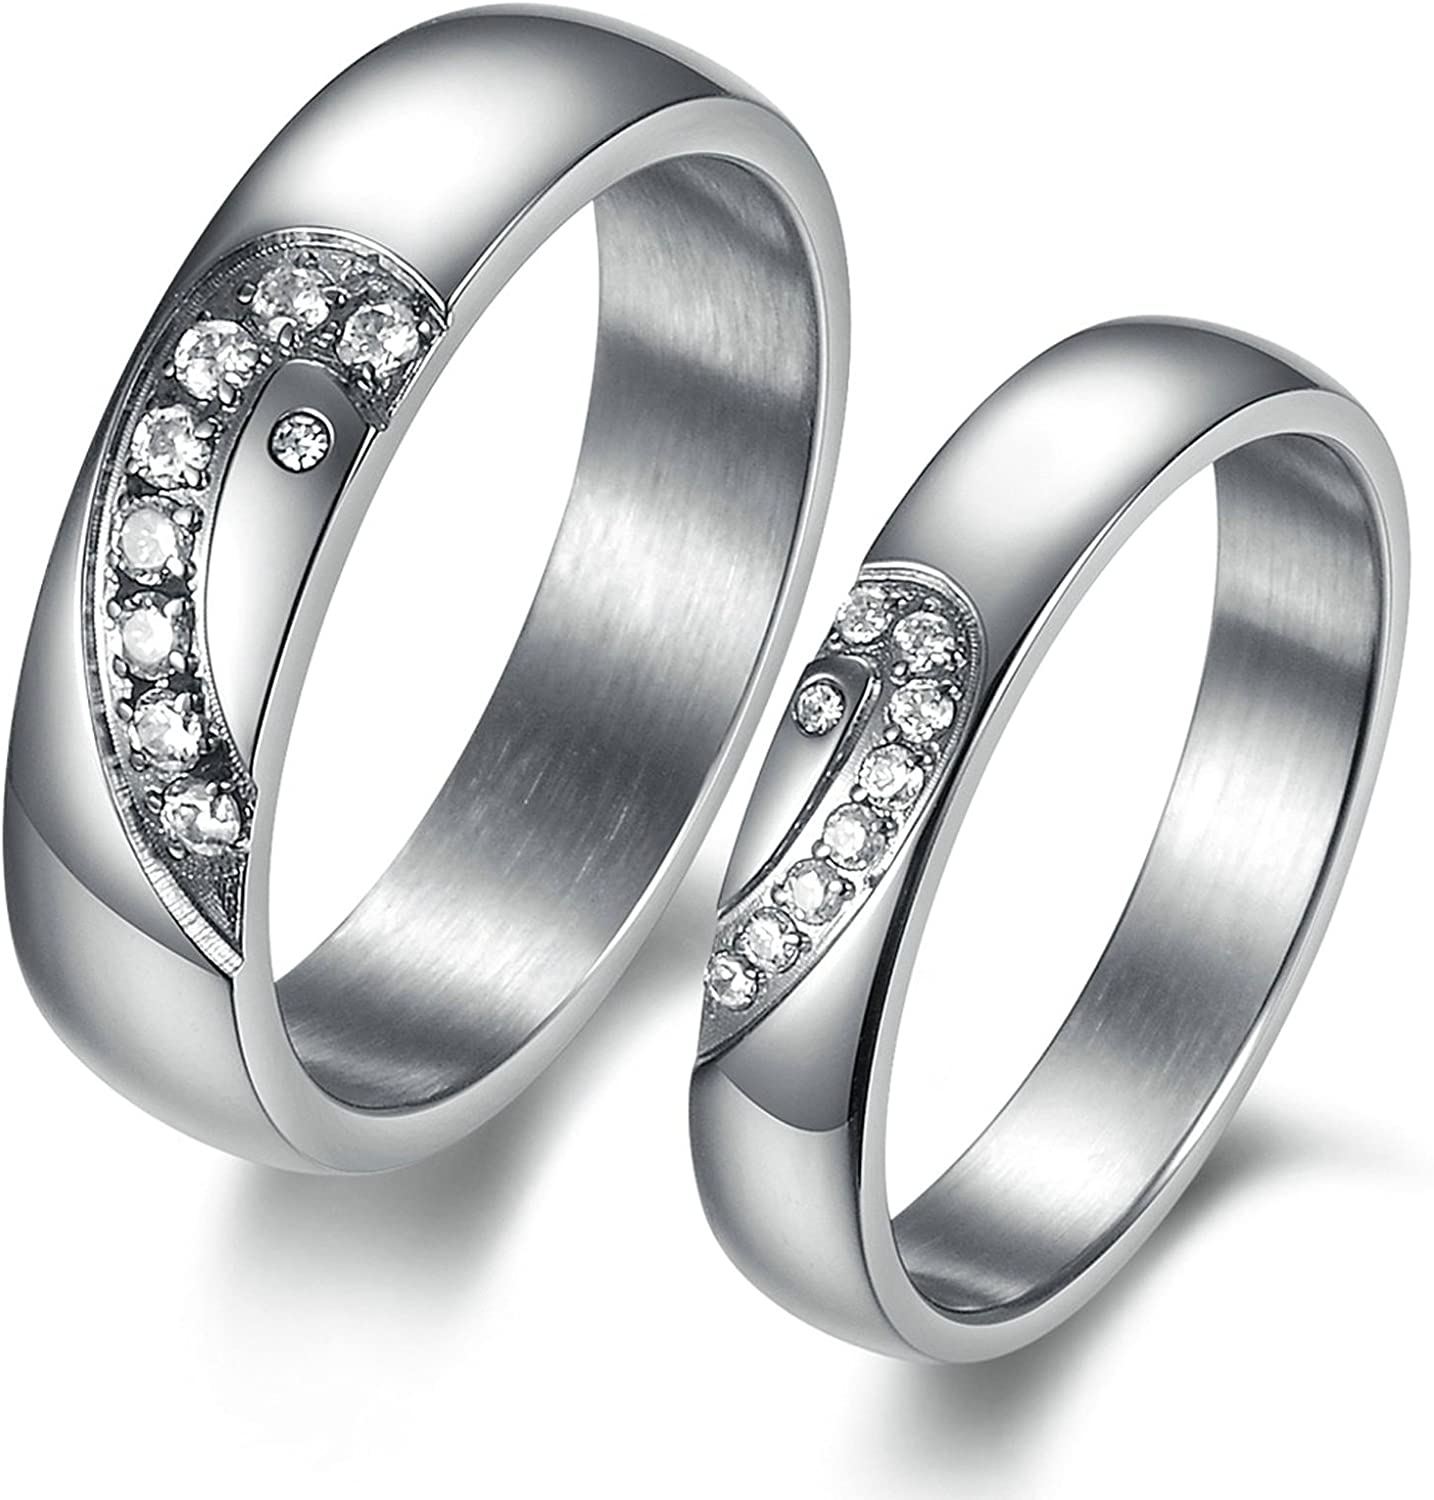 Daesar Mens Womens Wedding Bands Stainless Steel Silver Gold Highly Polished Rings for Couples 4mm /& 6mm